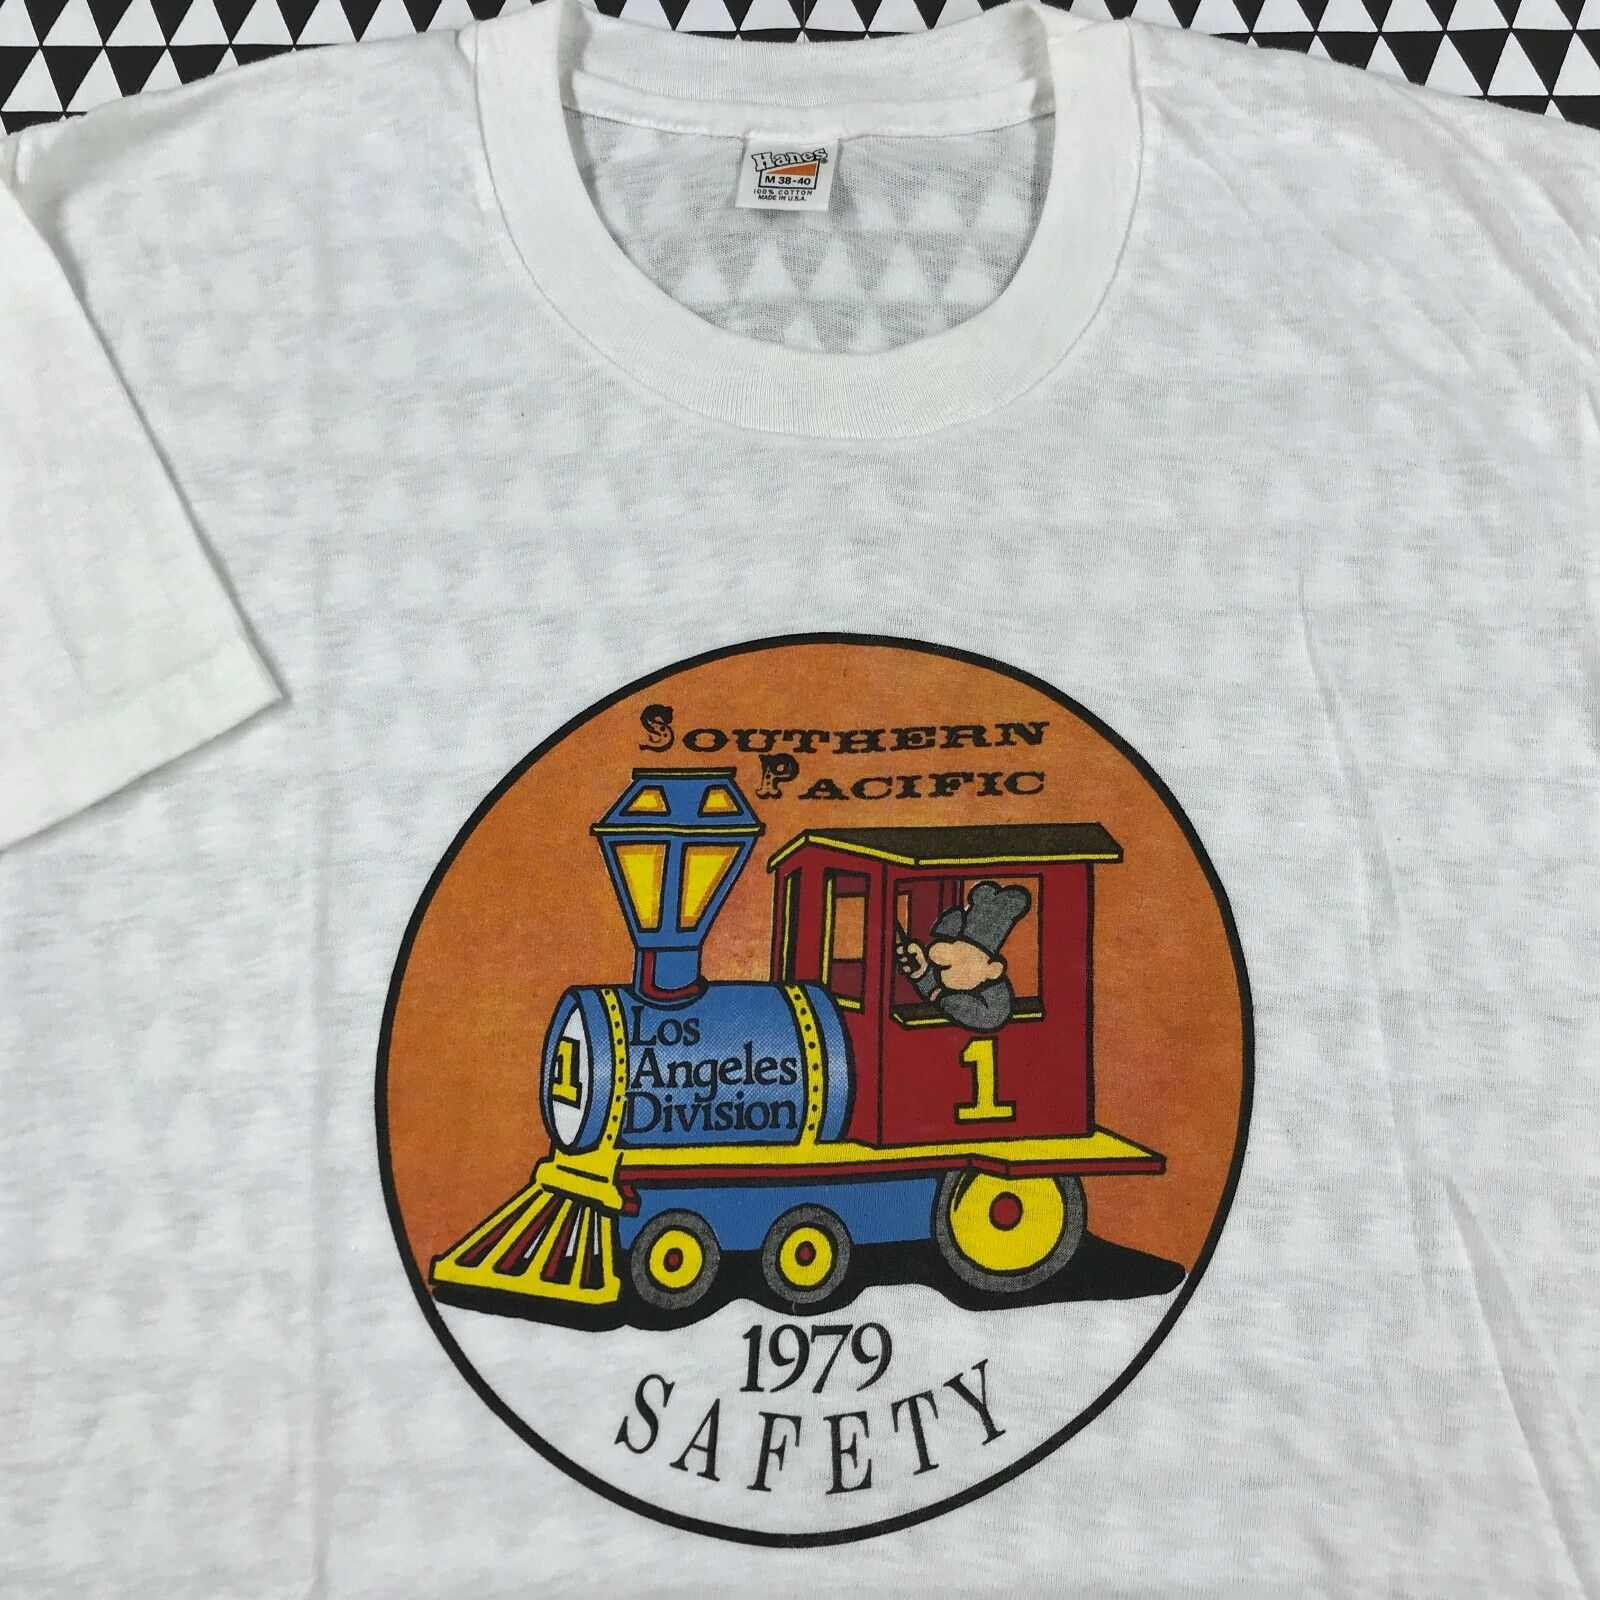 NWOT Vintage 1979 SOUTHERN PACIFIC SAFETY T-Shirt S M LOS ANGELES DIVISION 70's